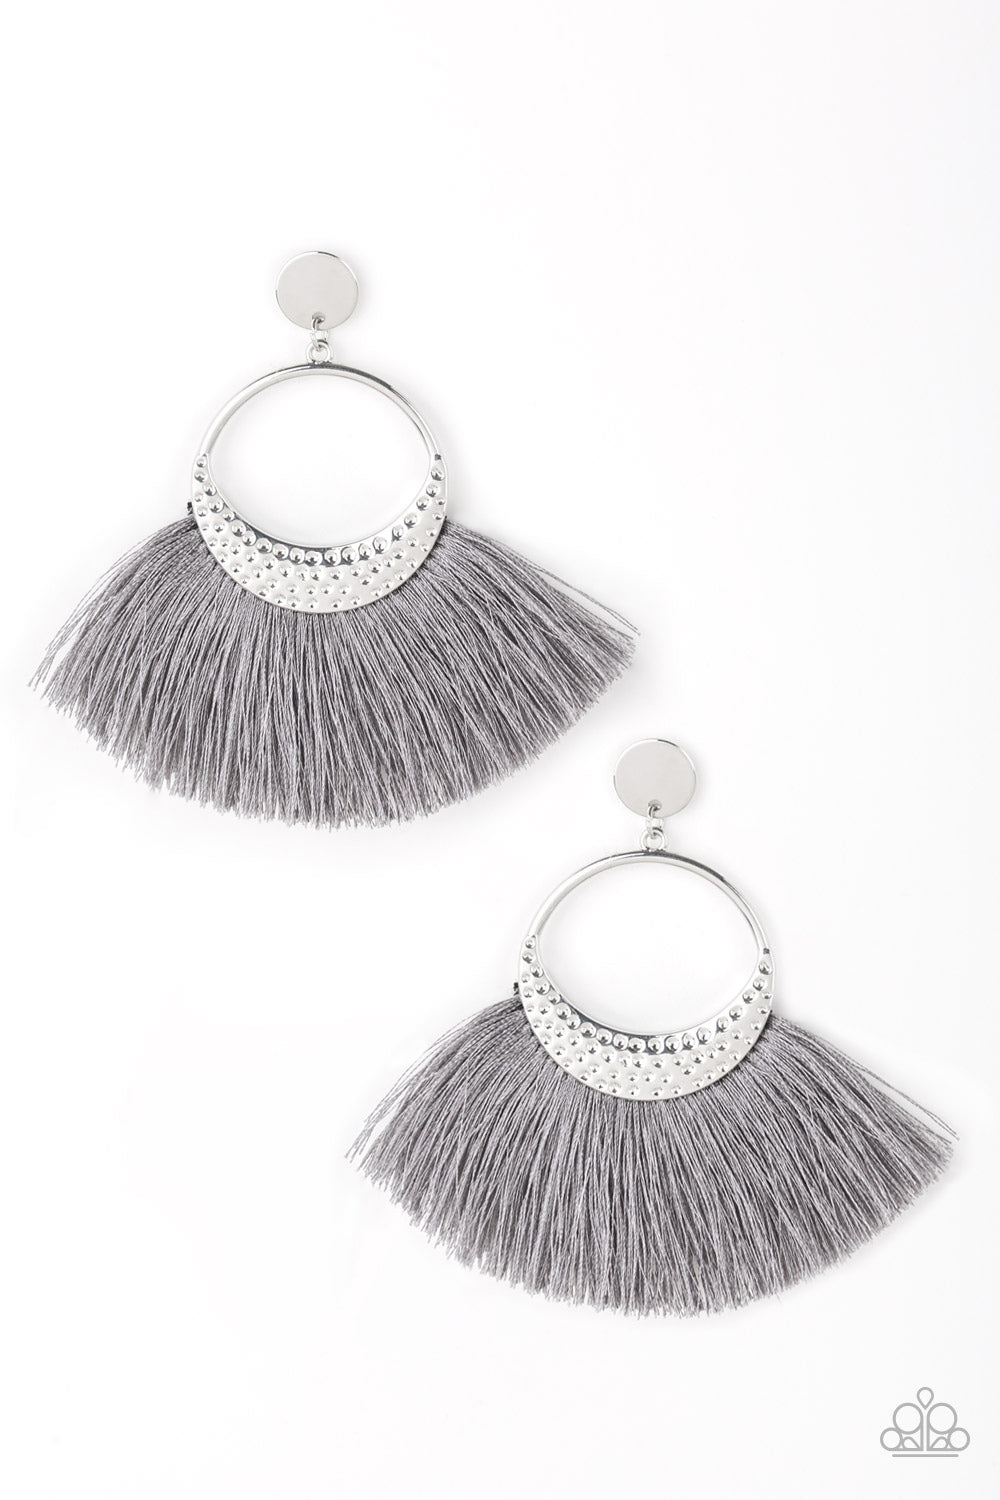 Paparazzi Accessories Spartan Spirit - Silver Earring - Be Adored Jewelry